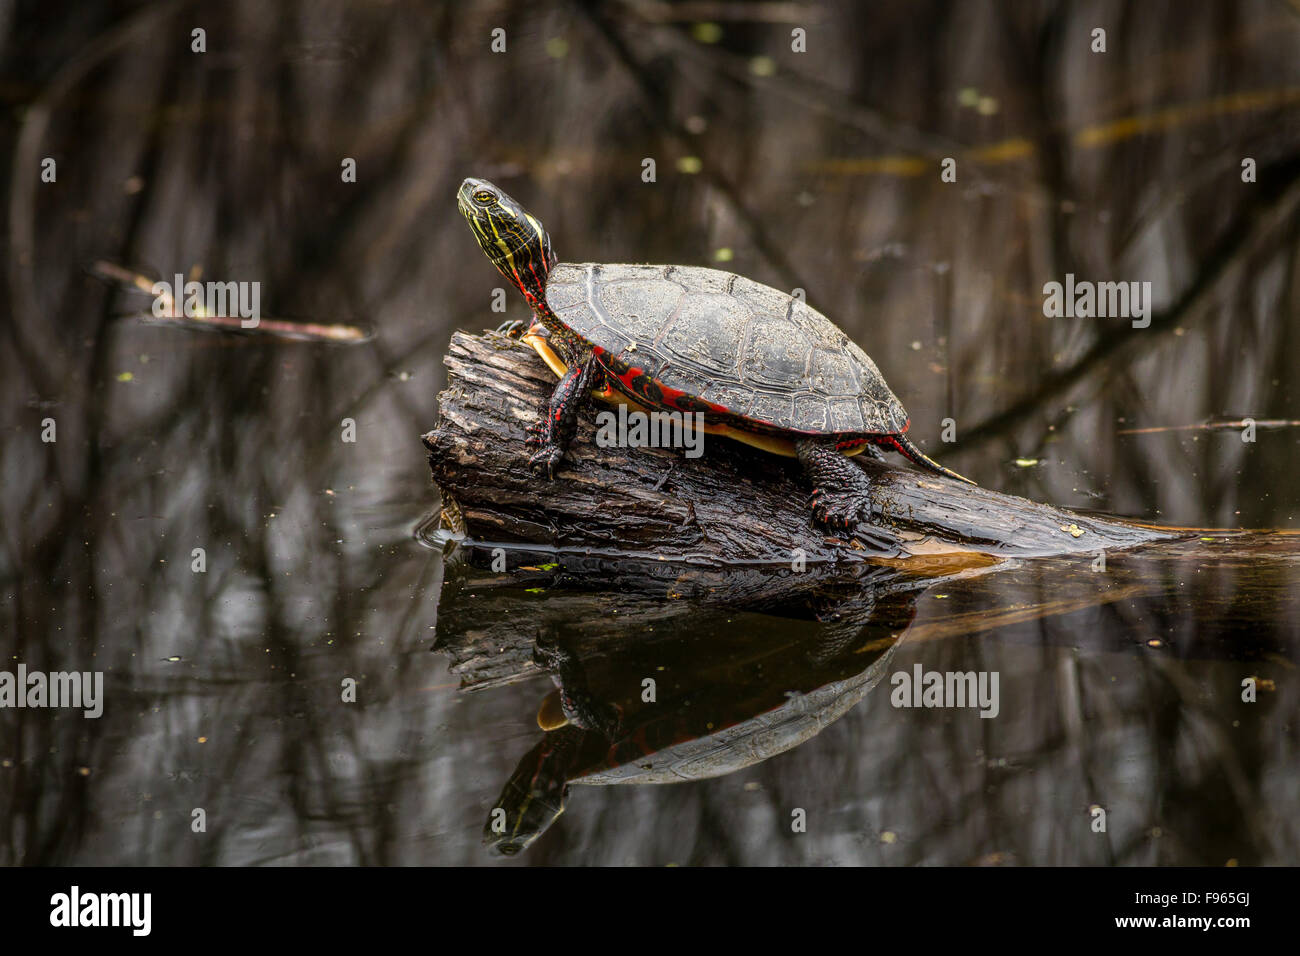 Midland Painted Turtle (Chrysemys picta marginata) sunning on a log in Frontenac Provincial Park, Ontario, Canada - Stock Image